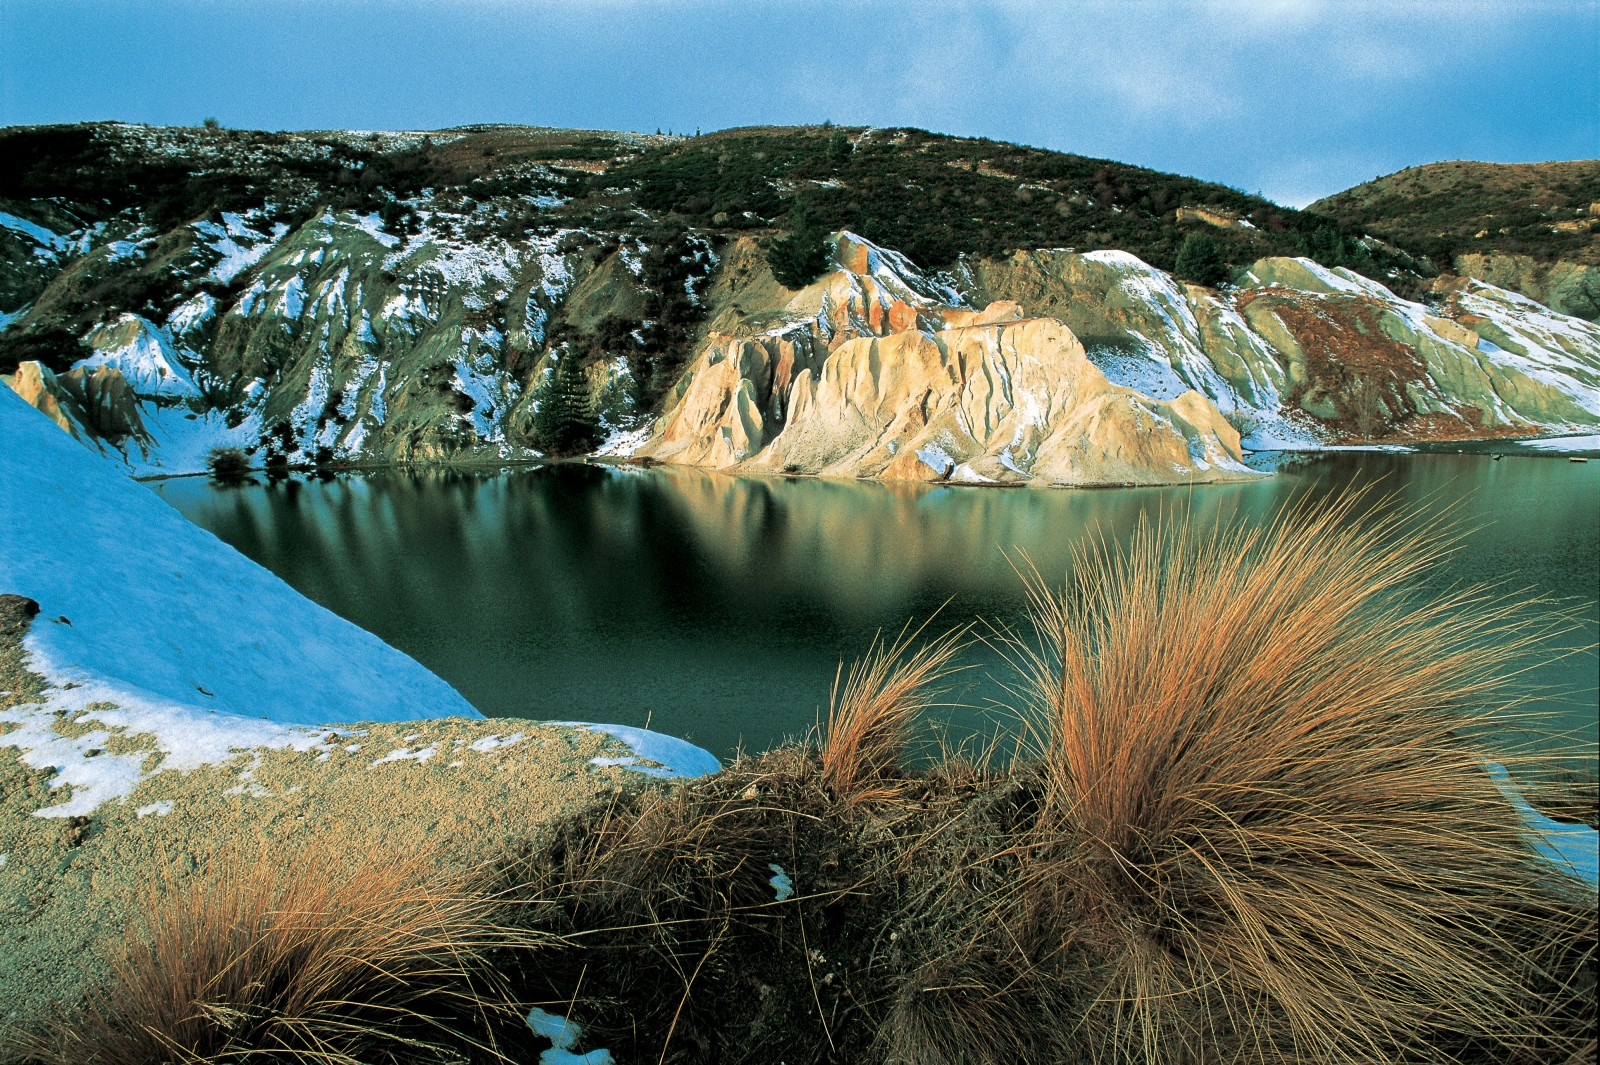 Once a 120-metre-high hill, the 68-metre-deep Blue Lake in St. Bathans was created by a gold sluicing operation which began in 1873. By 1932, the work stopped amid fears that the town's foundations were being undermined. Natural drainage filled the workings creating St. Bathans' signature attraction.